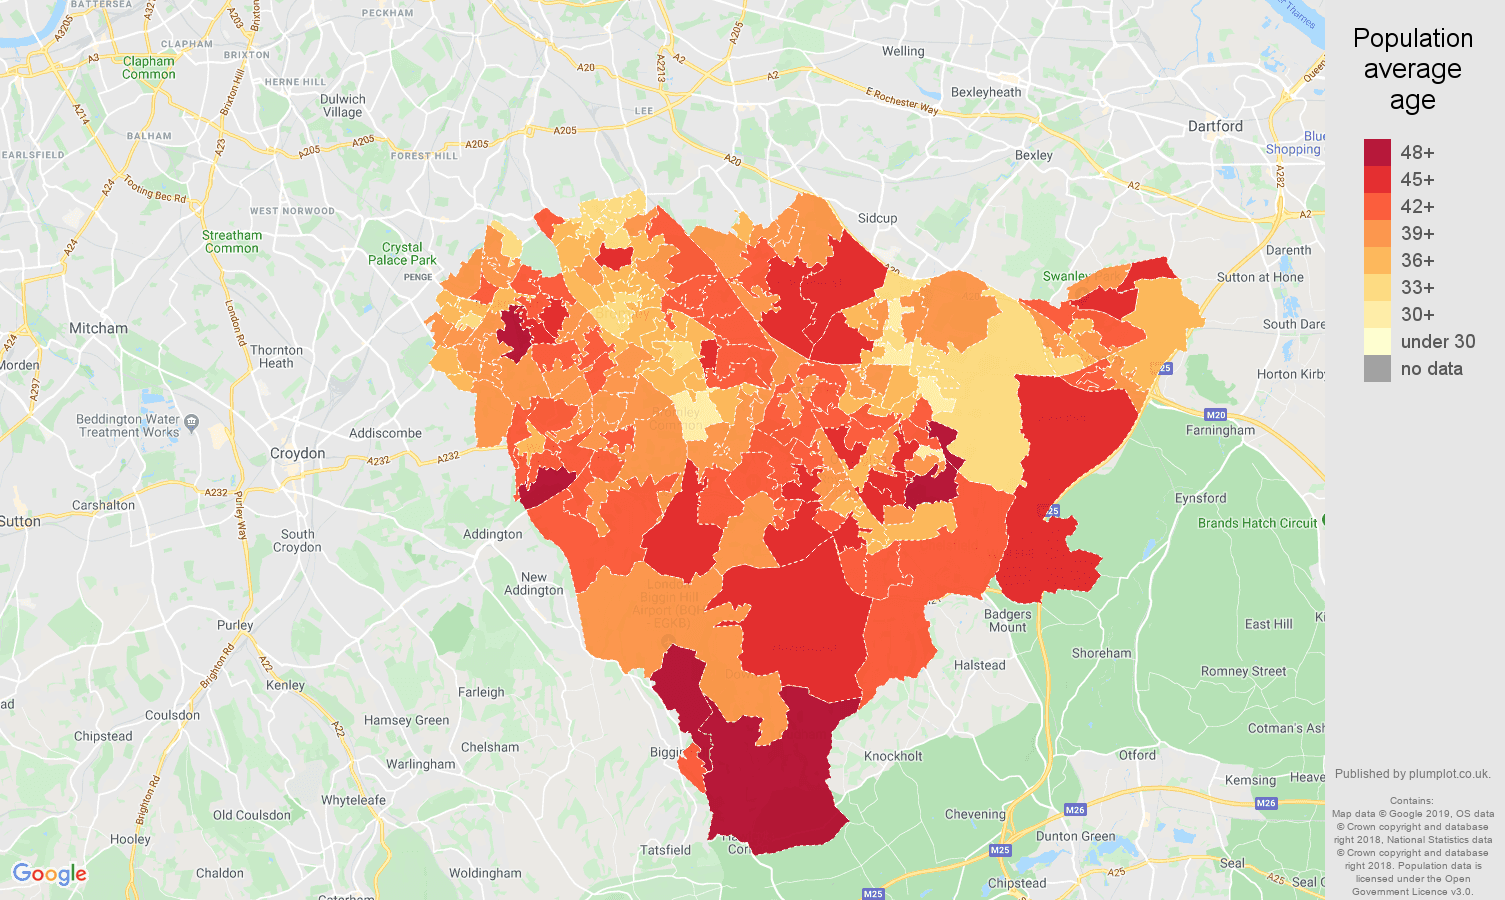 Bromley population average age map